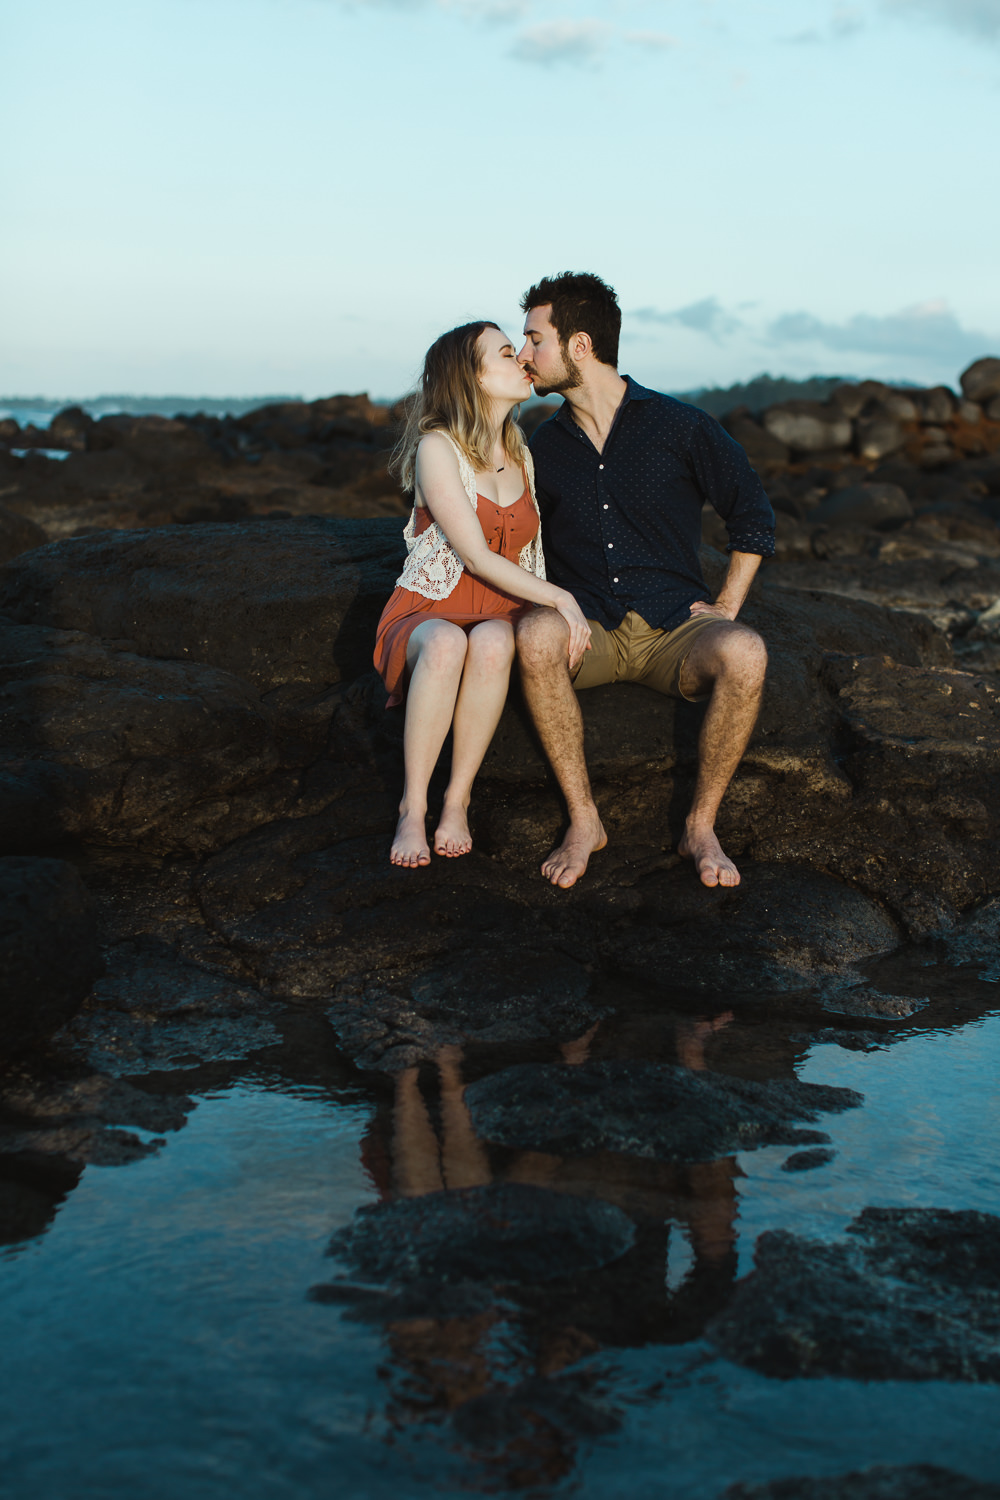 couples_engagement_photos_maui_beach_paia-3.jpg